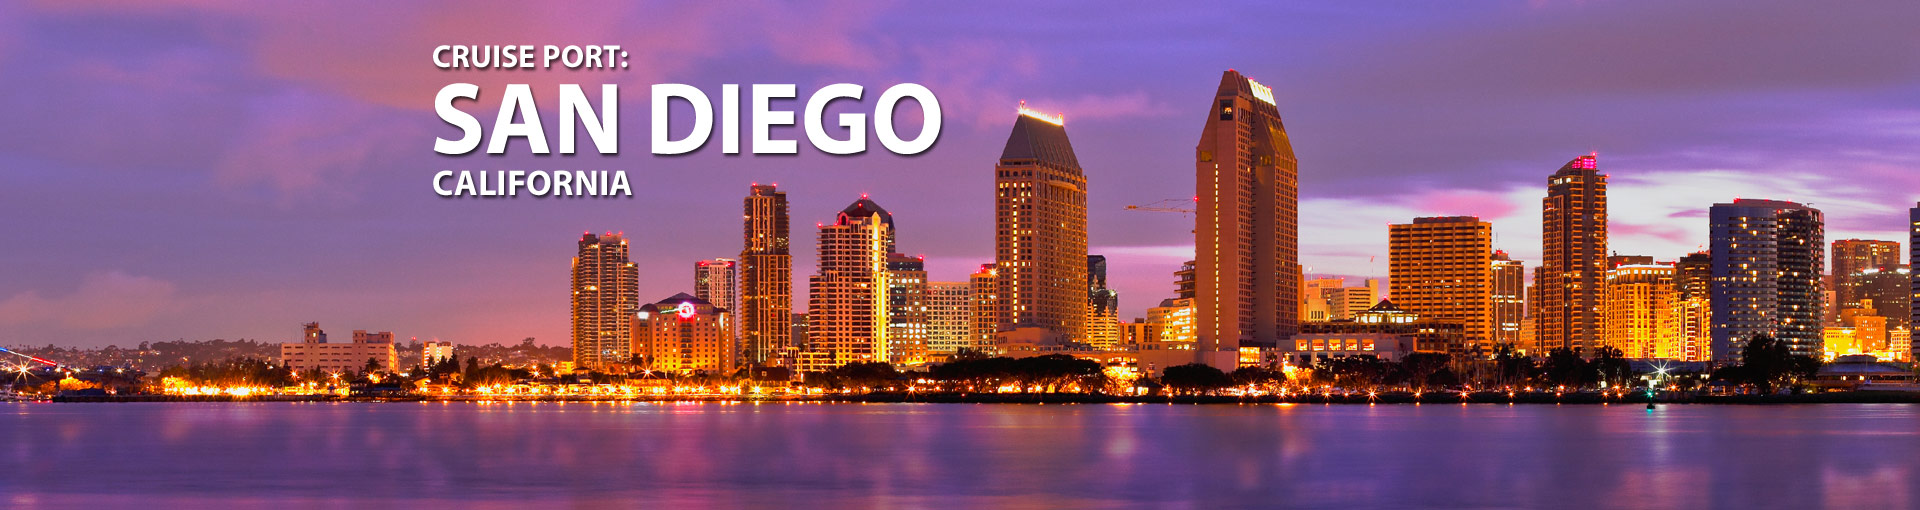 San Diego California Cruise Port 2017 And 2018 Cruises